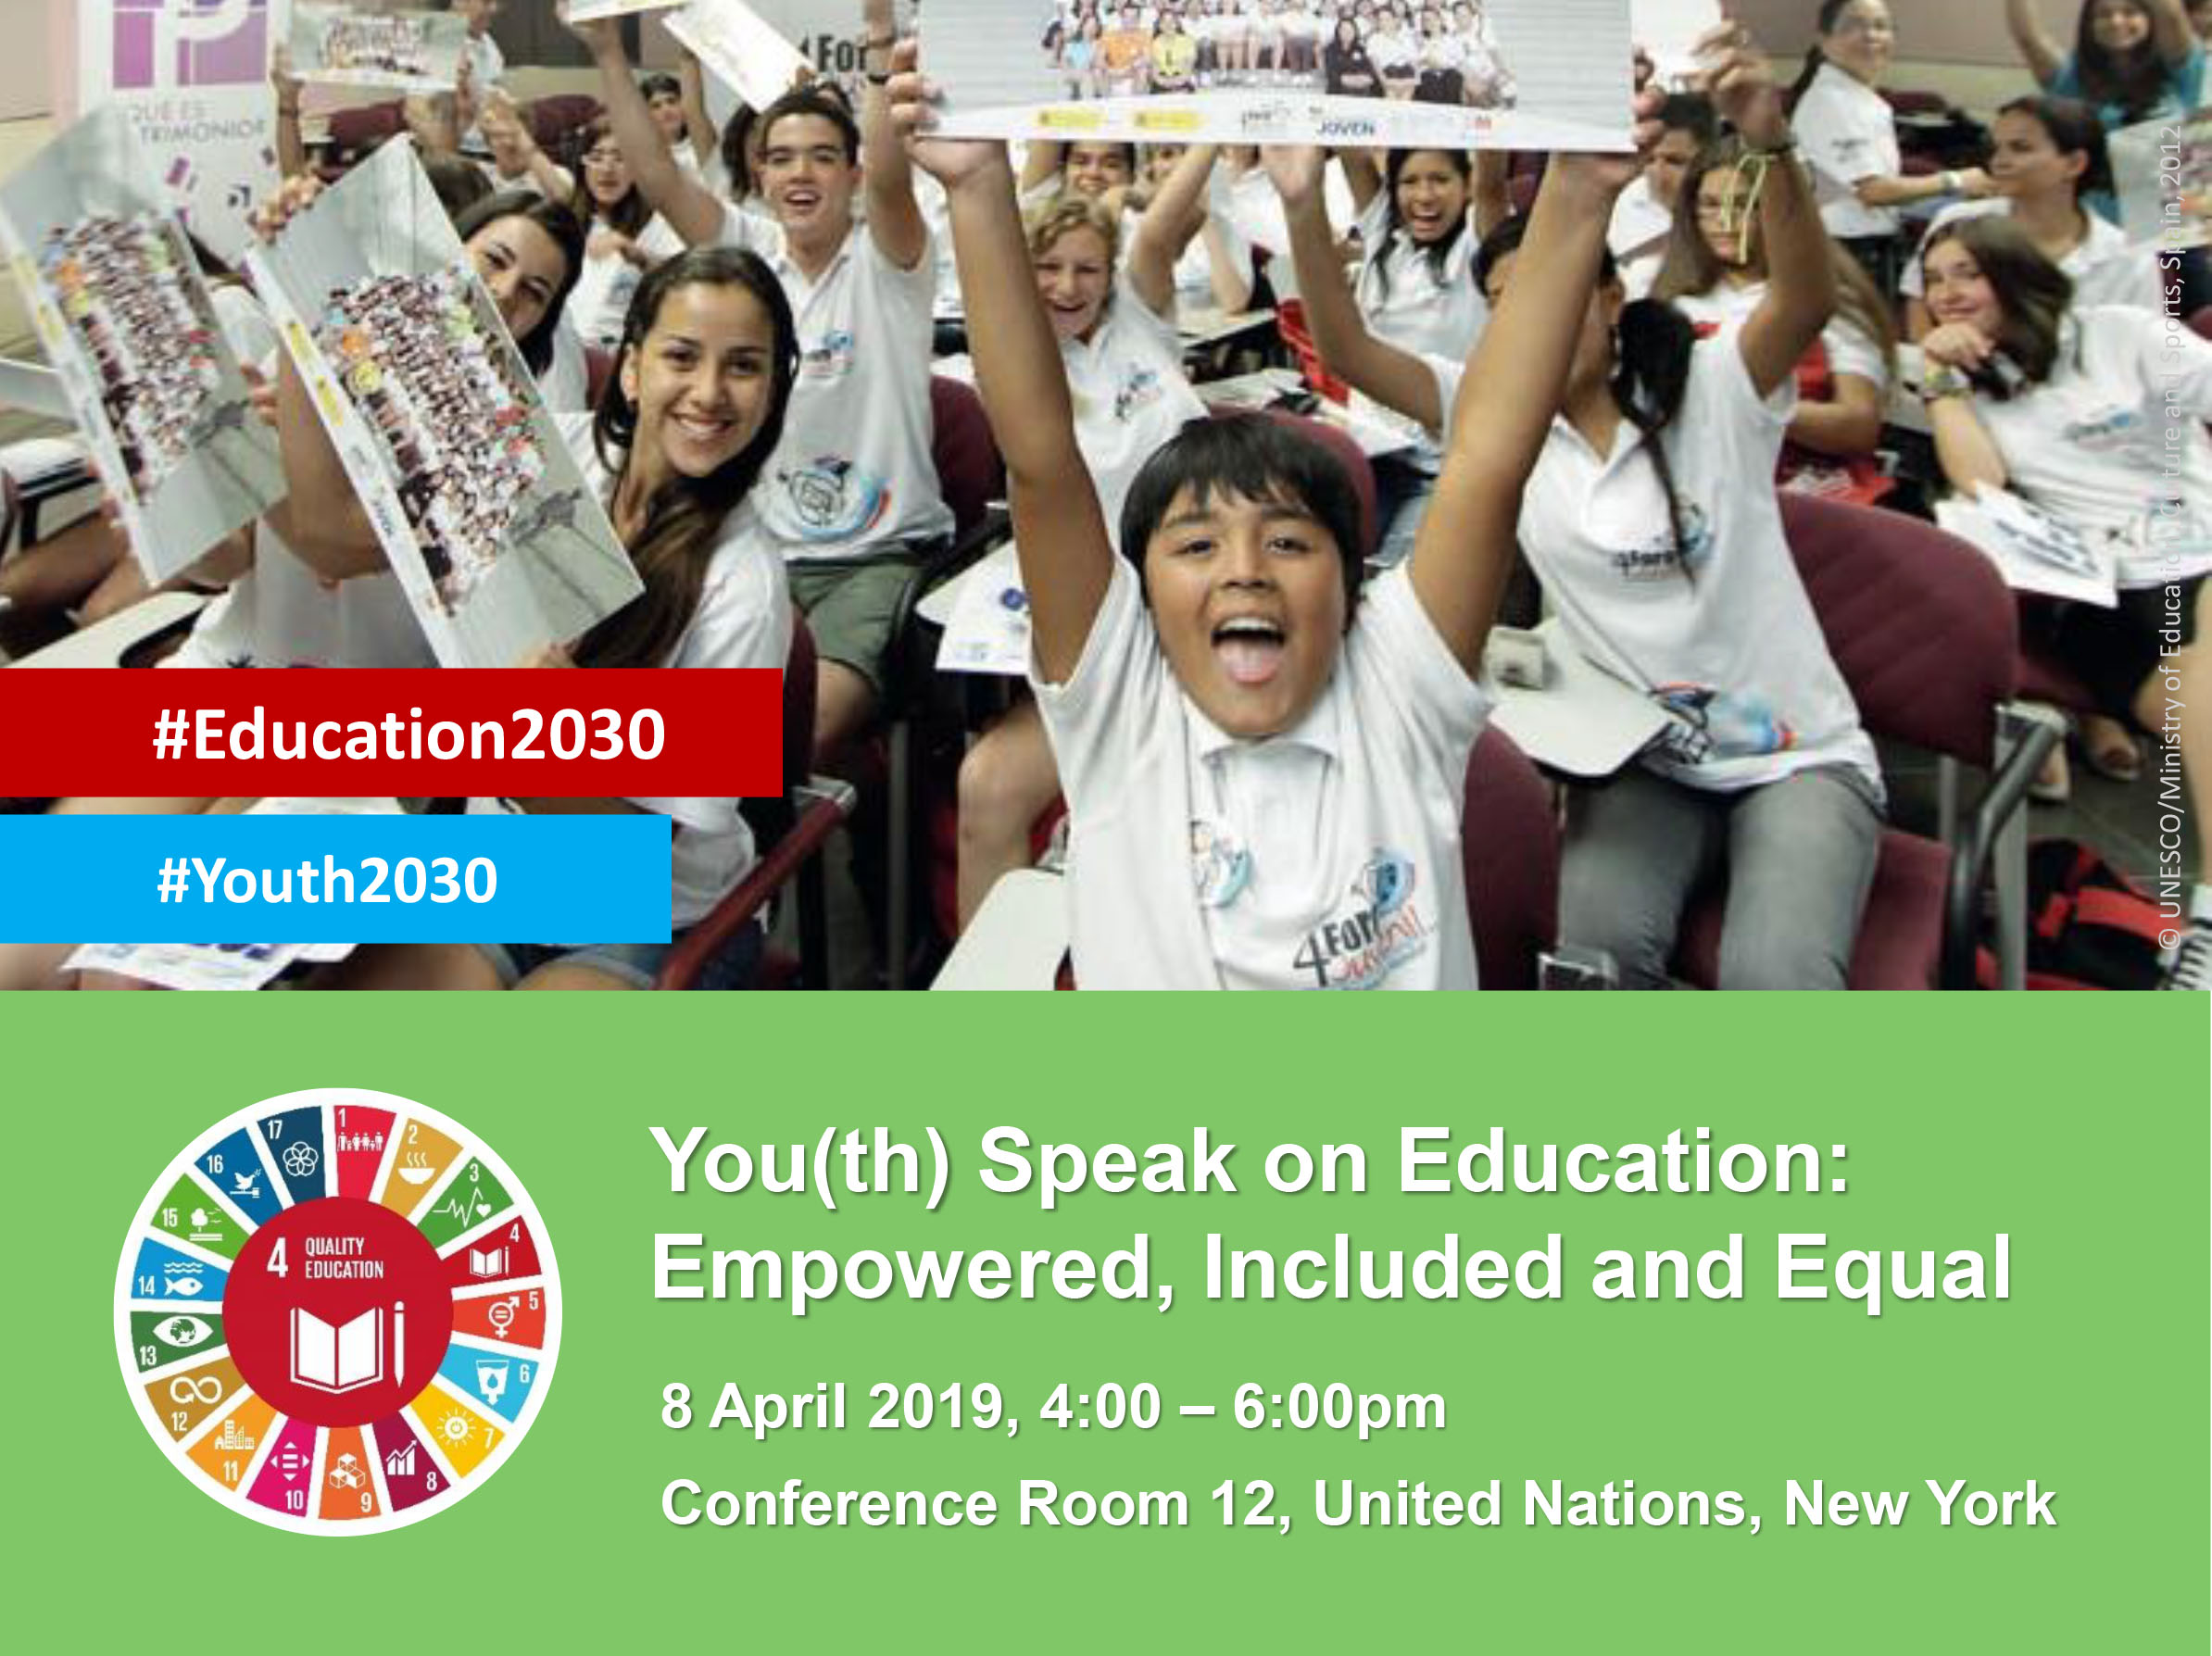 You(th) Speak on Education: Empowered, Included and Equal, UN HQ, 8 April 2019